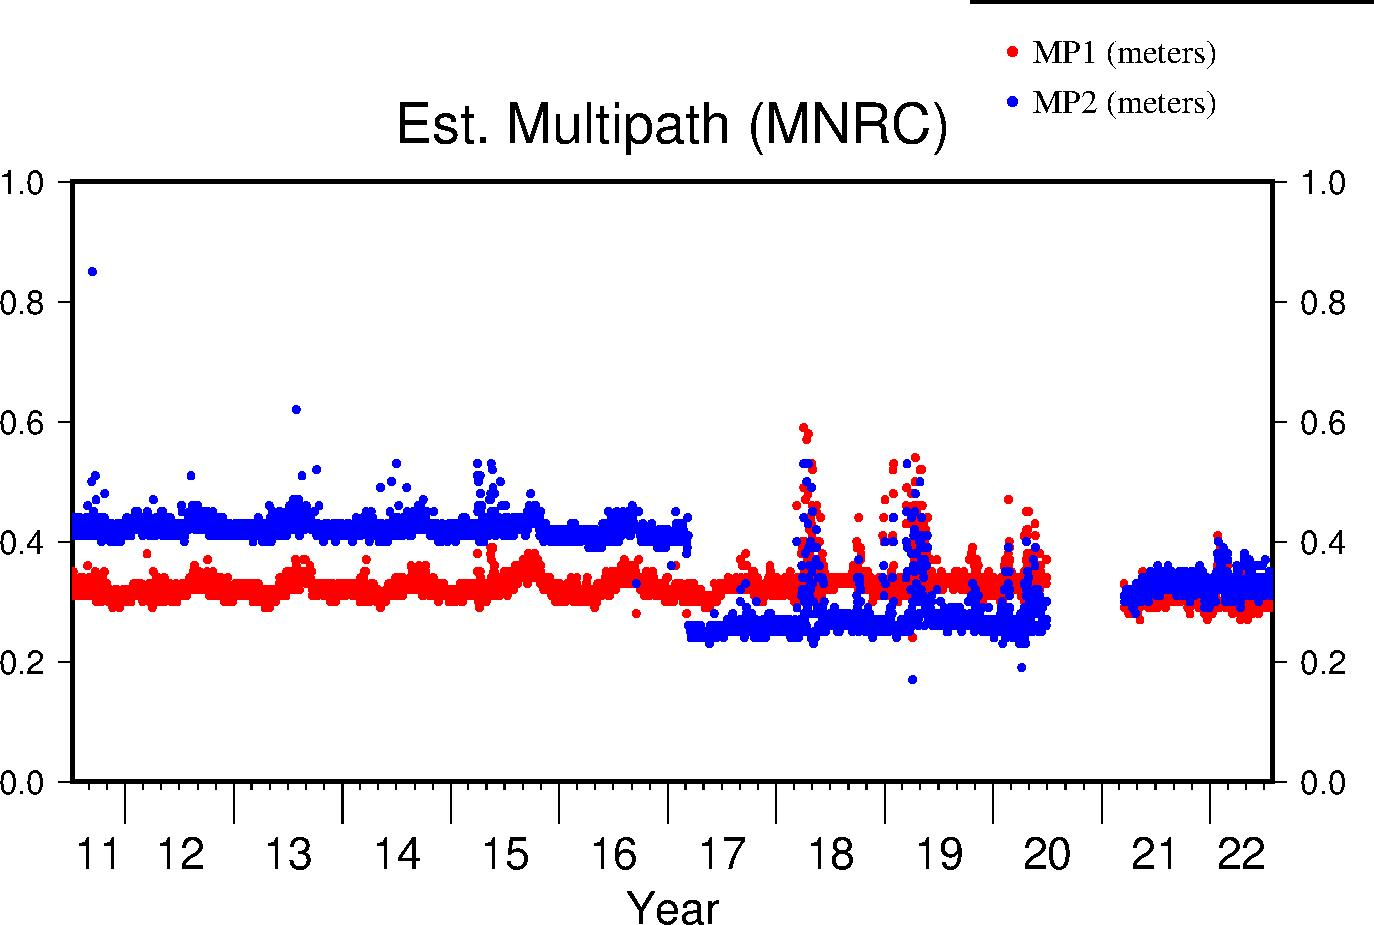 MNRC multipath lifetime